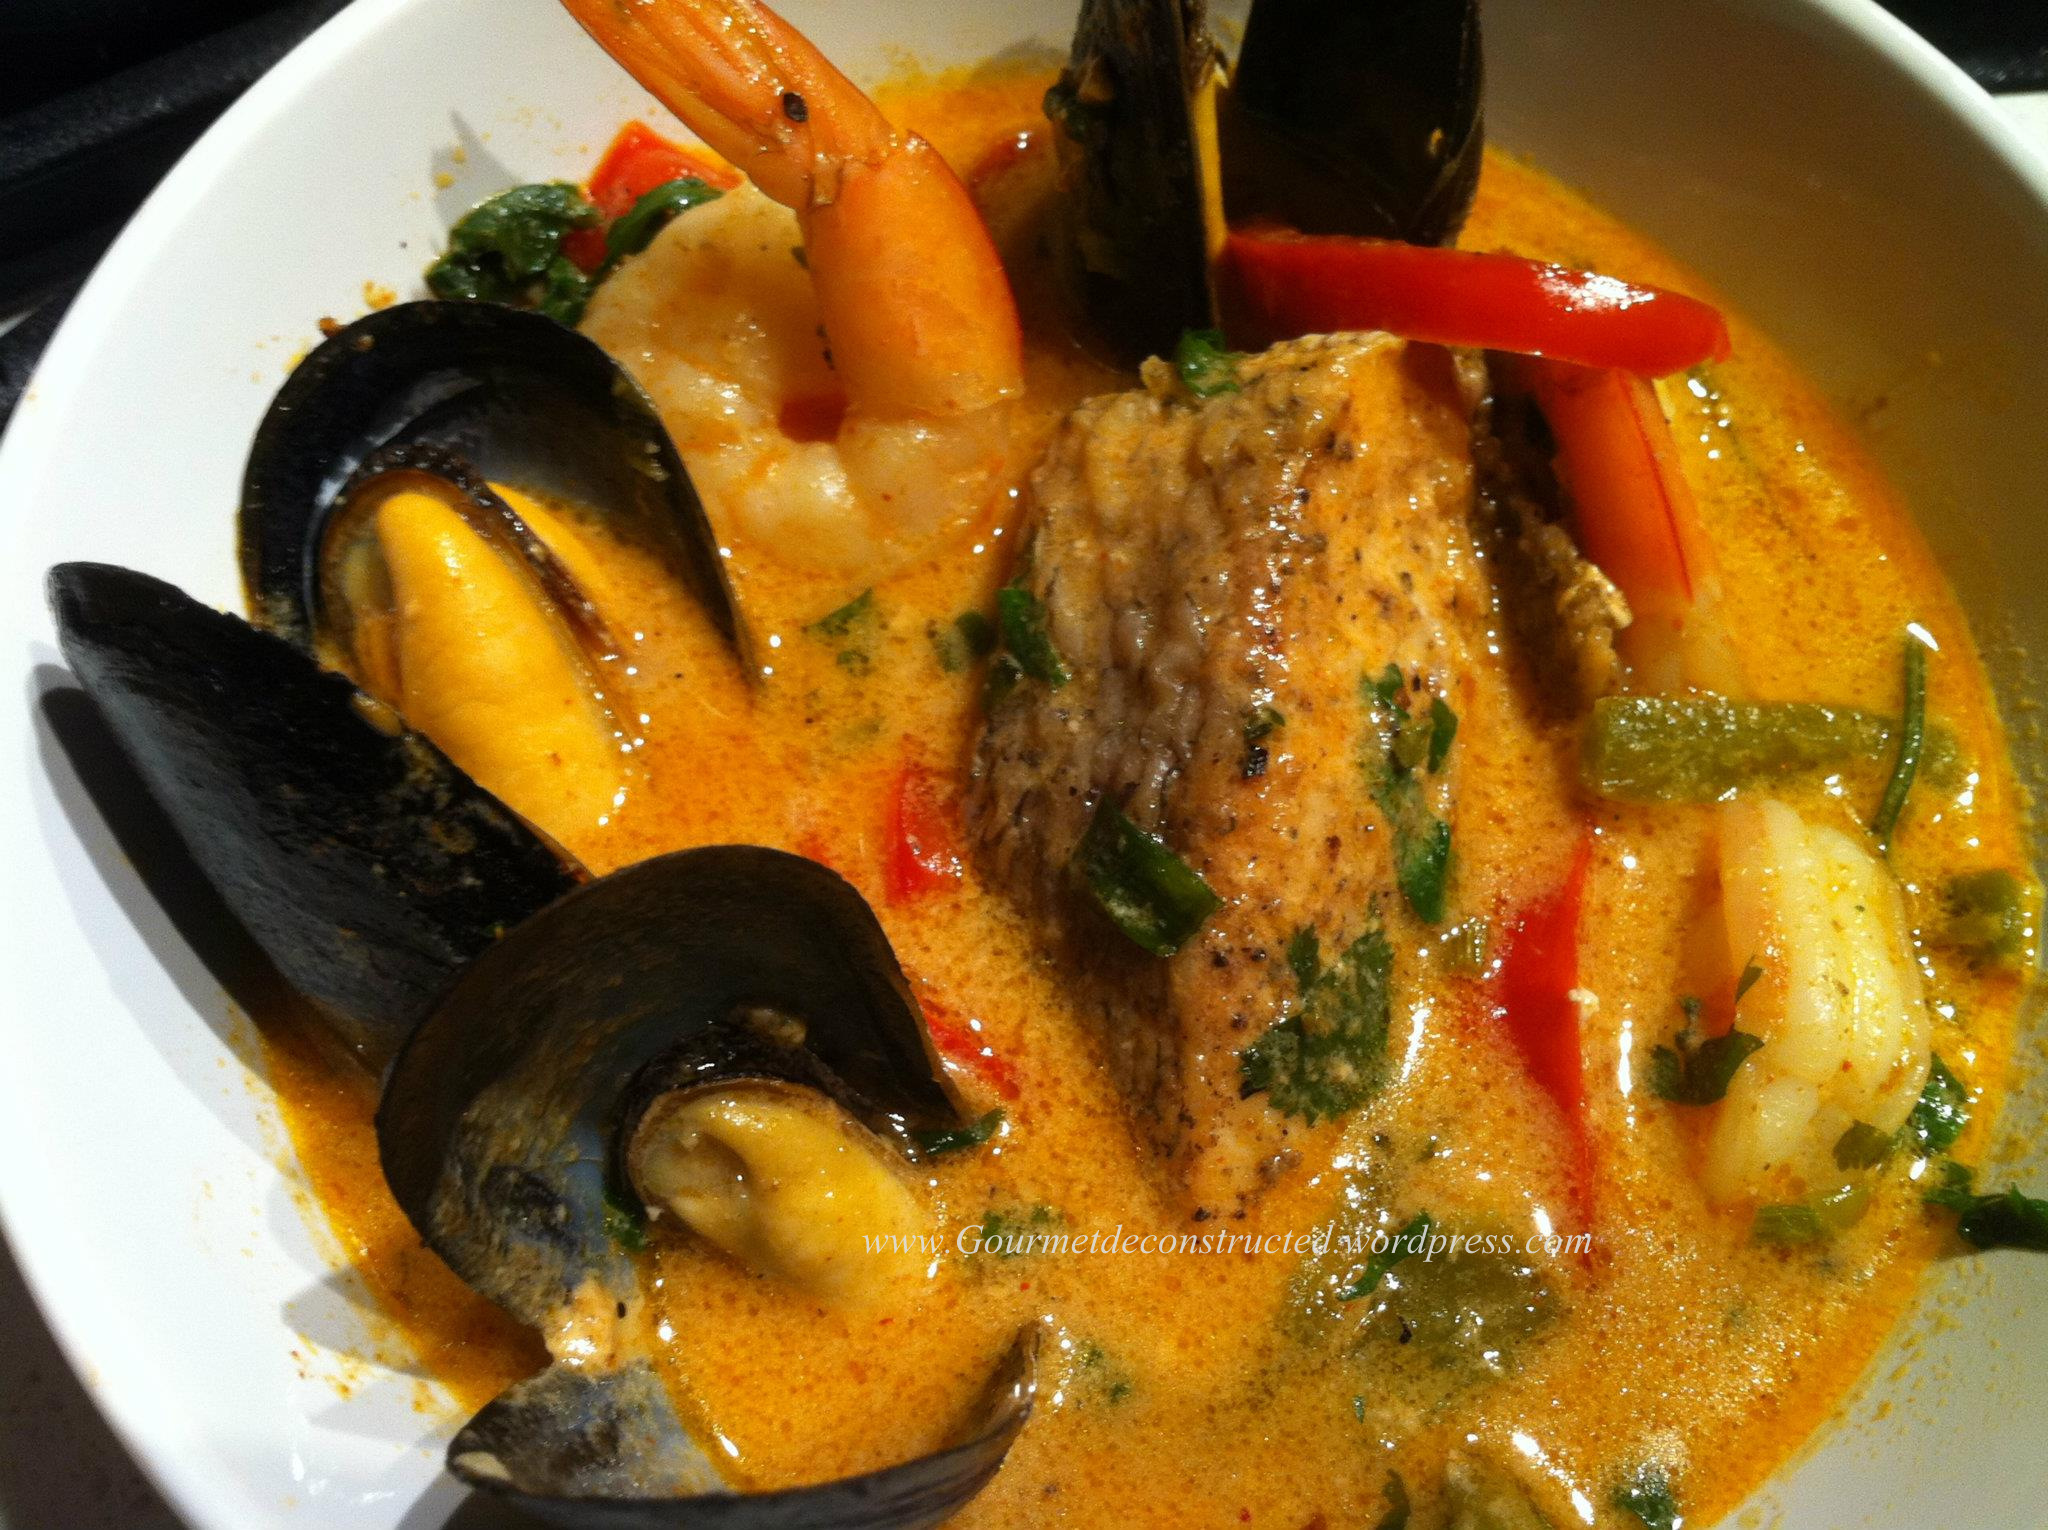 Seafood in Red Coconut Curry (Thai style) – Gourmet De-Constructed